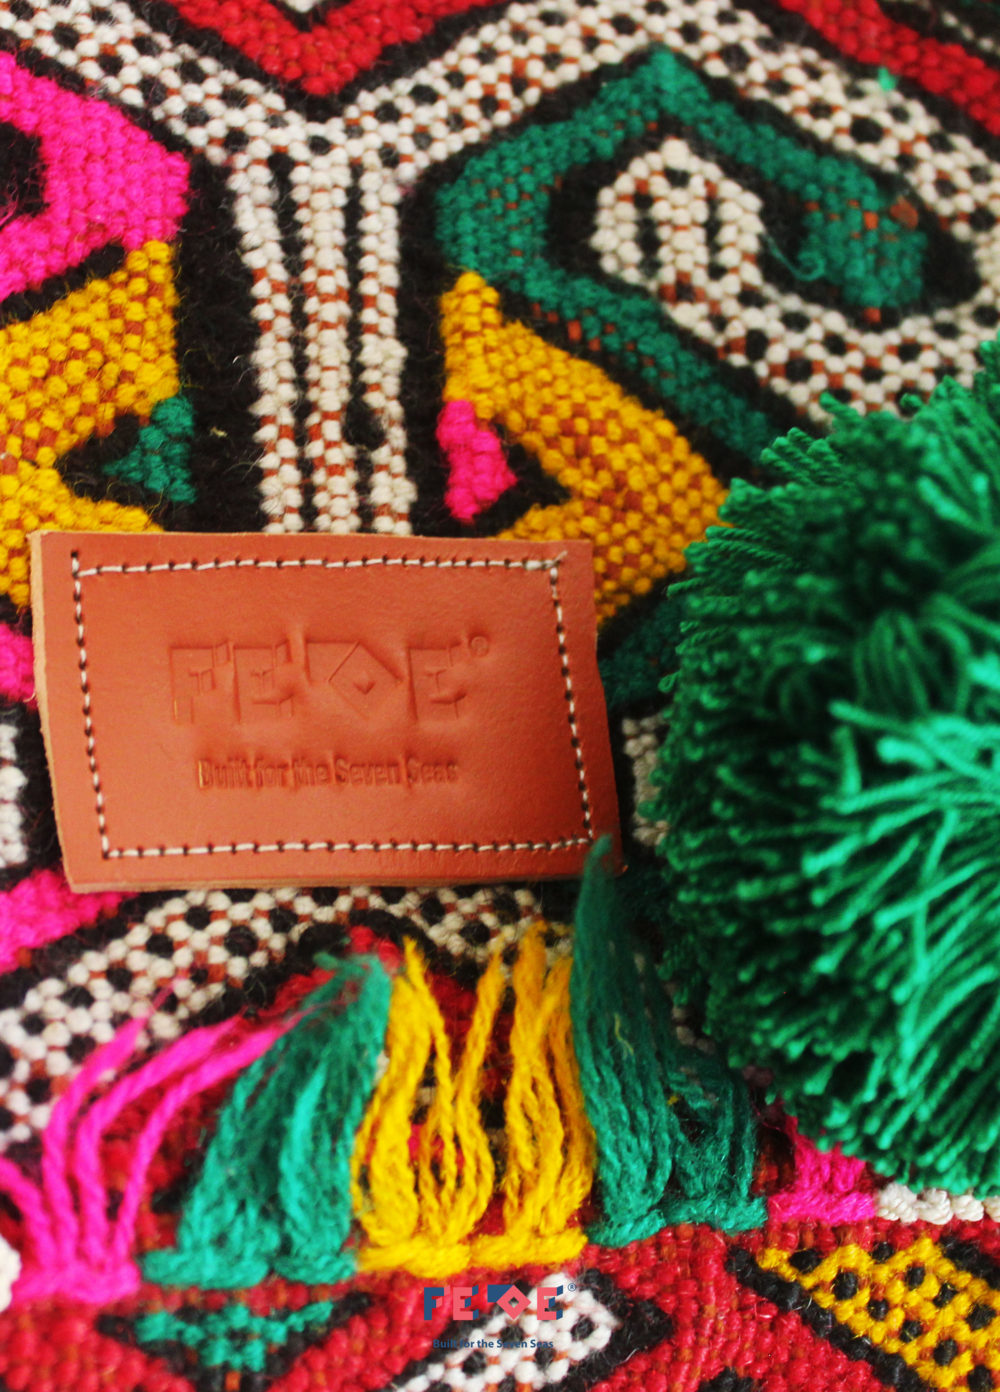 HAND WOVEN BAGS by Fede Surfbags